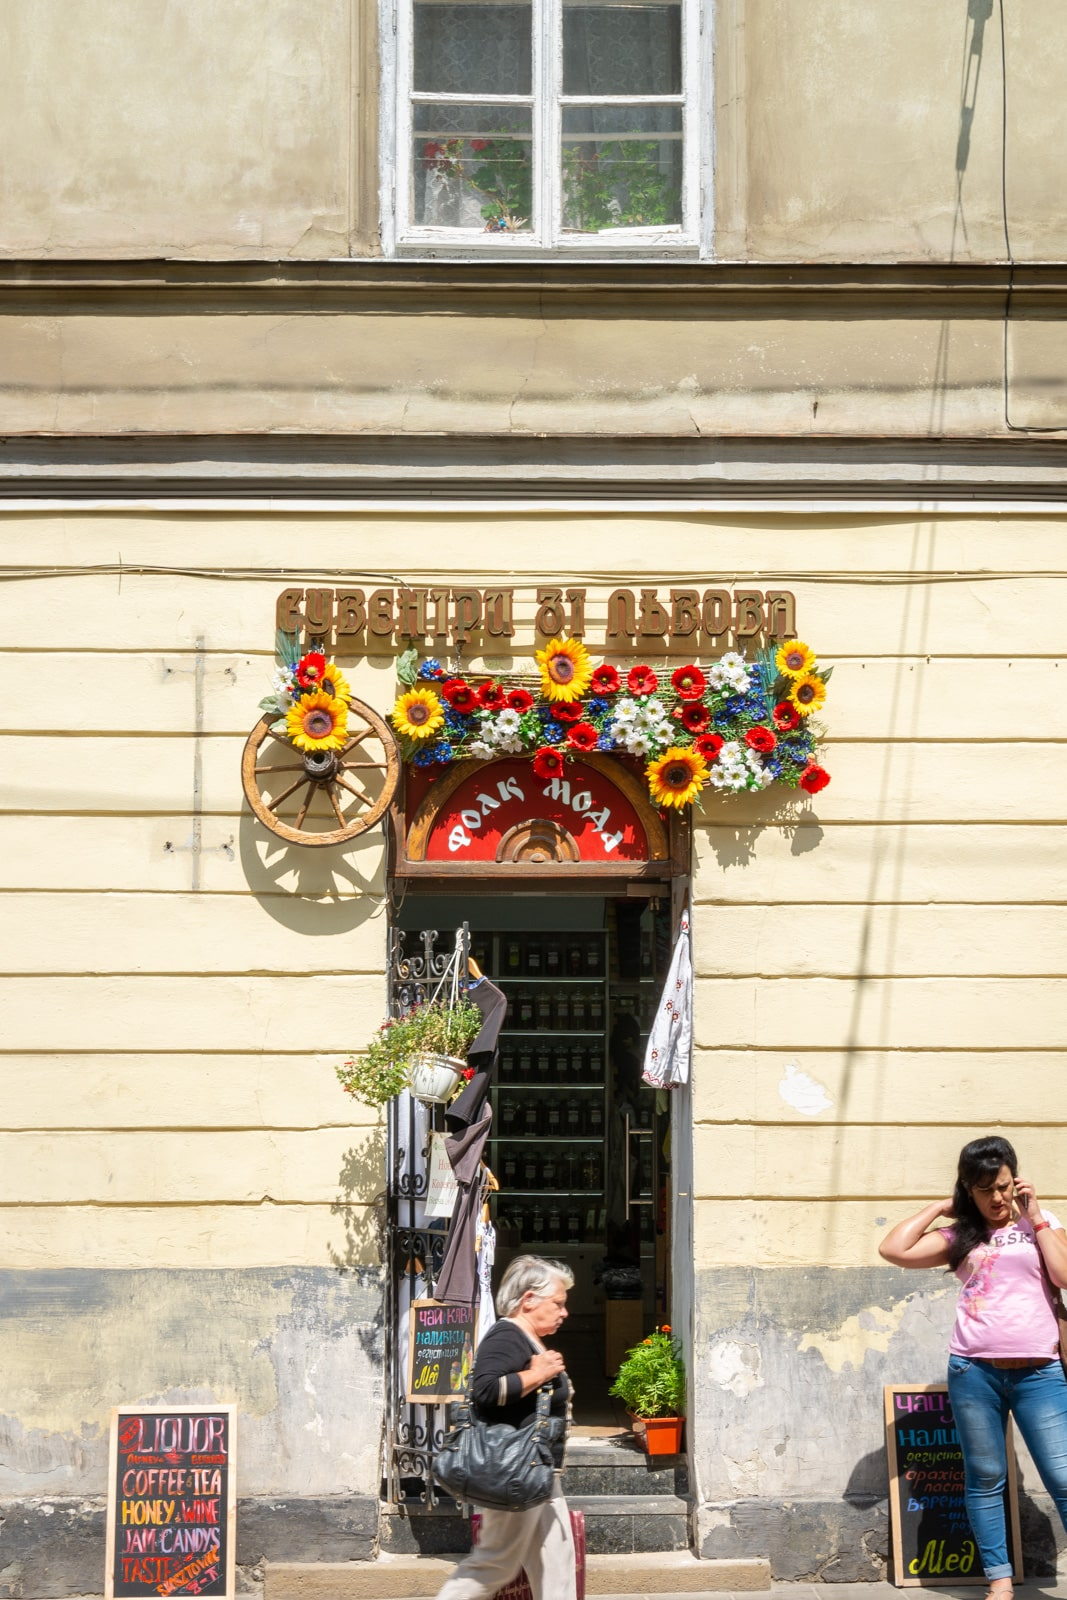 A store front with Cyrillic writing in Lviv, Ukraine